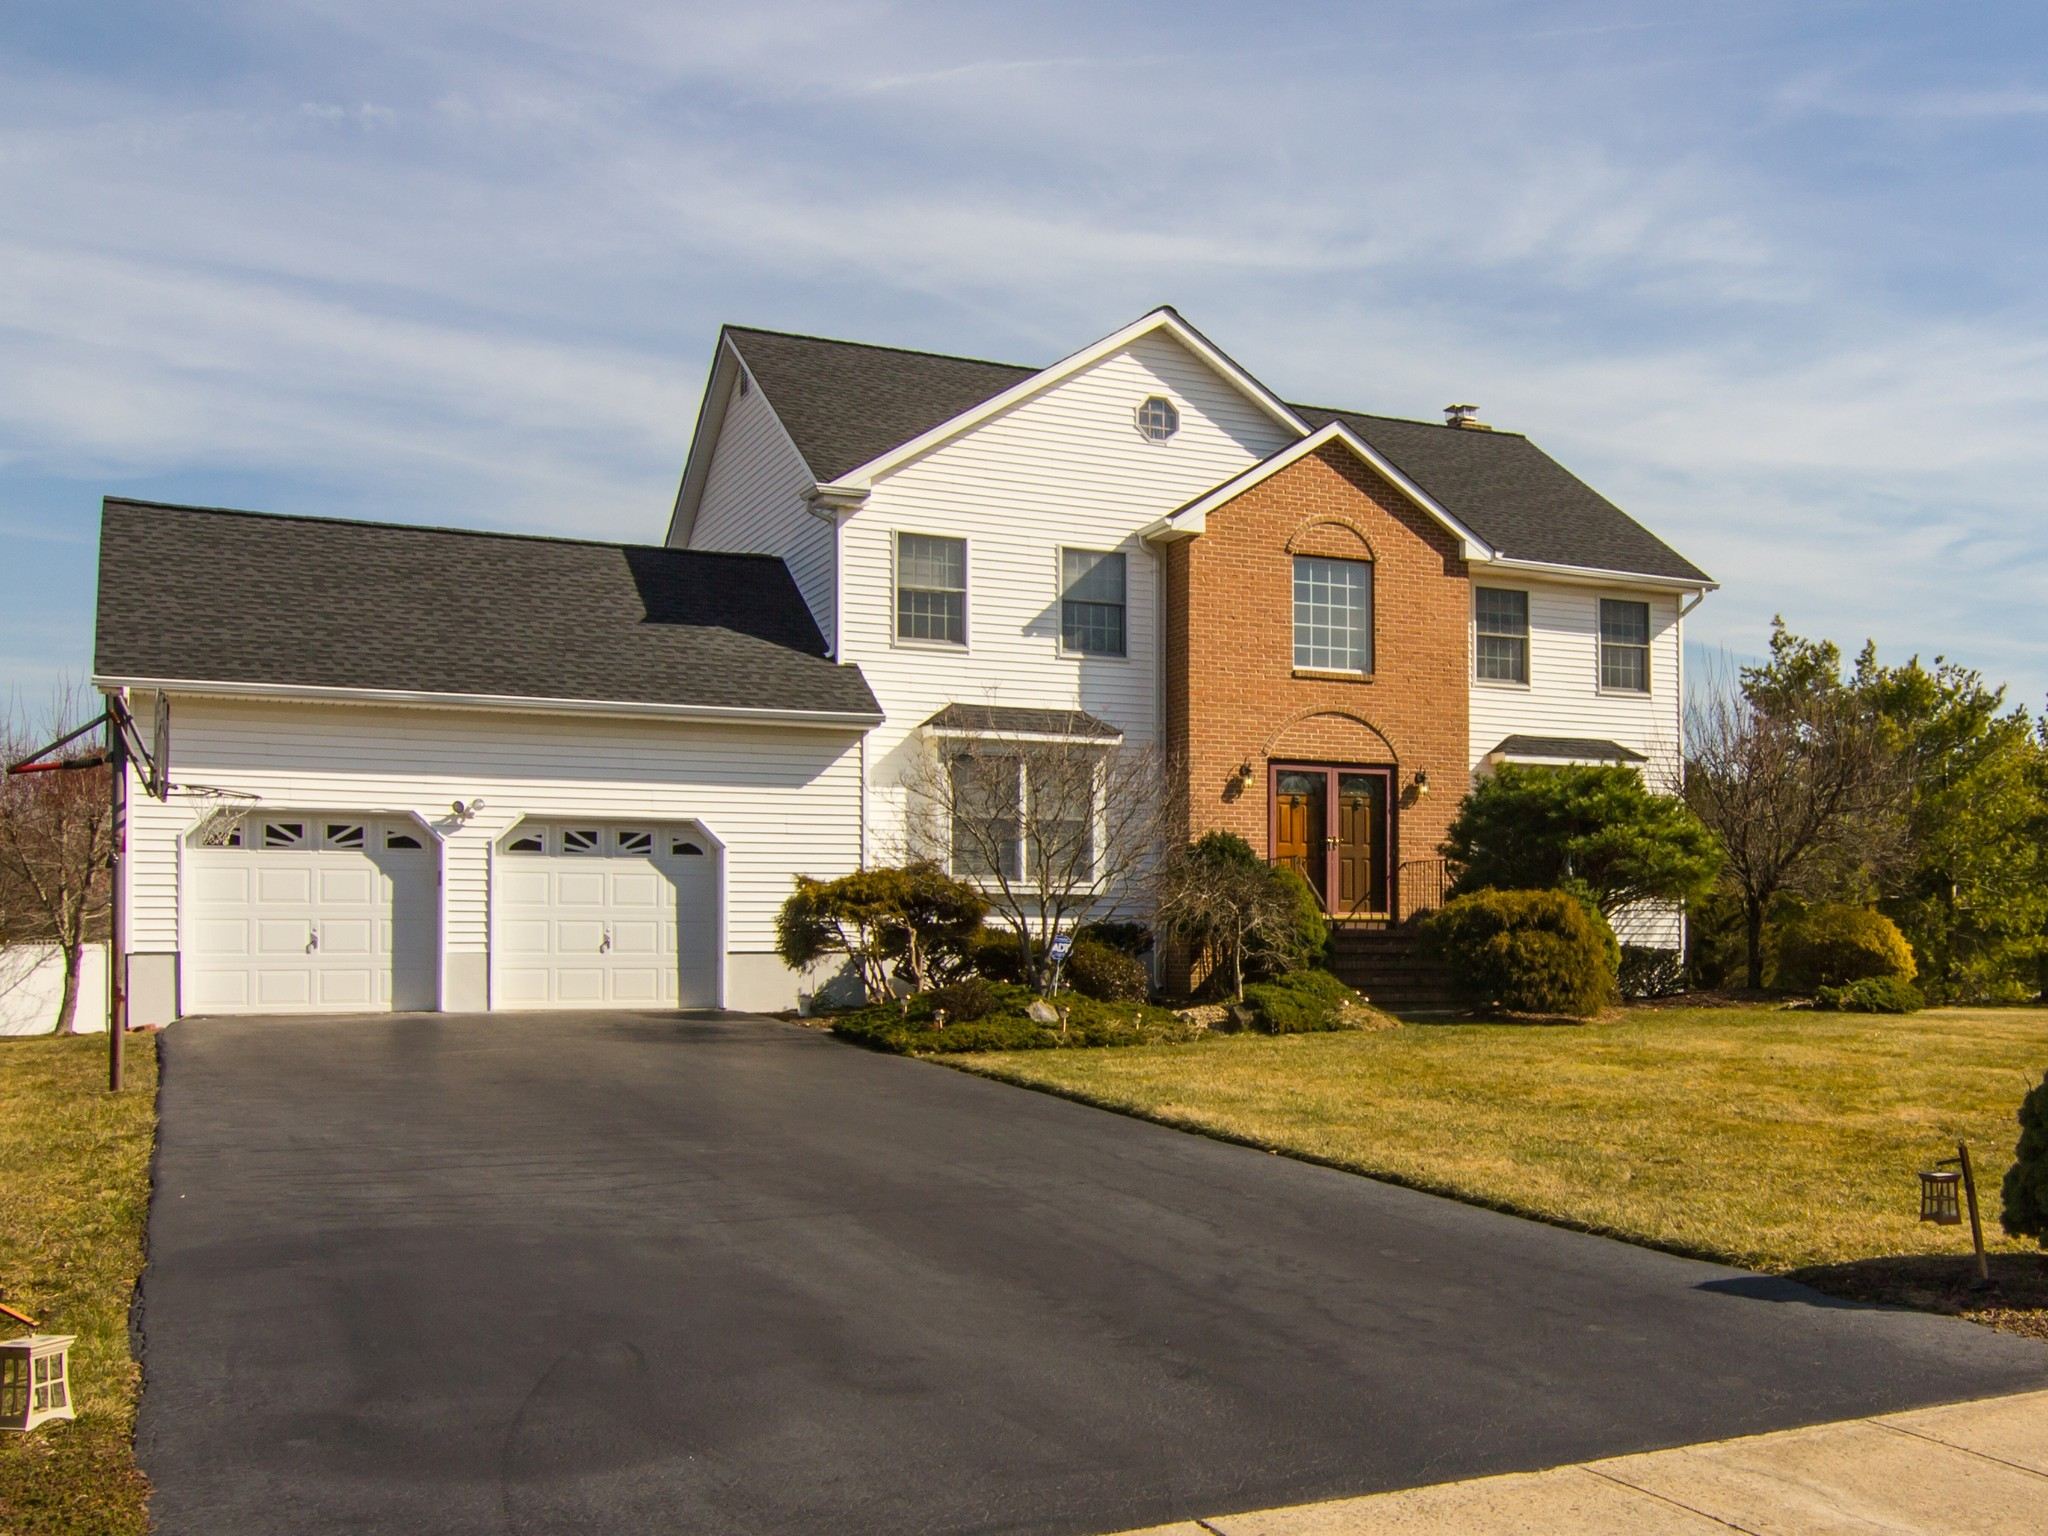 Single Family Home for Sale at Desirable Country Oaks! 8 Woodhollow Drive Manalapan, New Jersey, 07726 United States